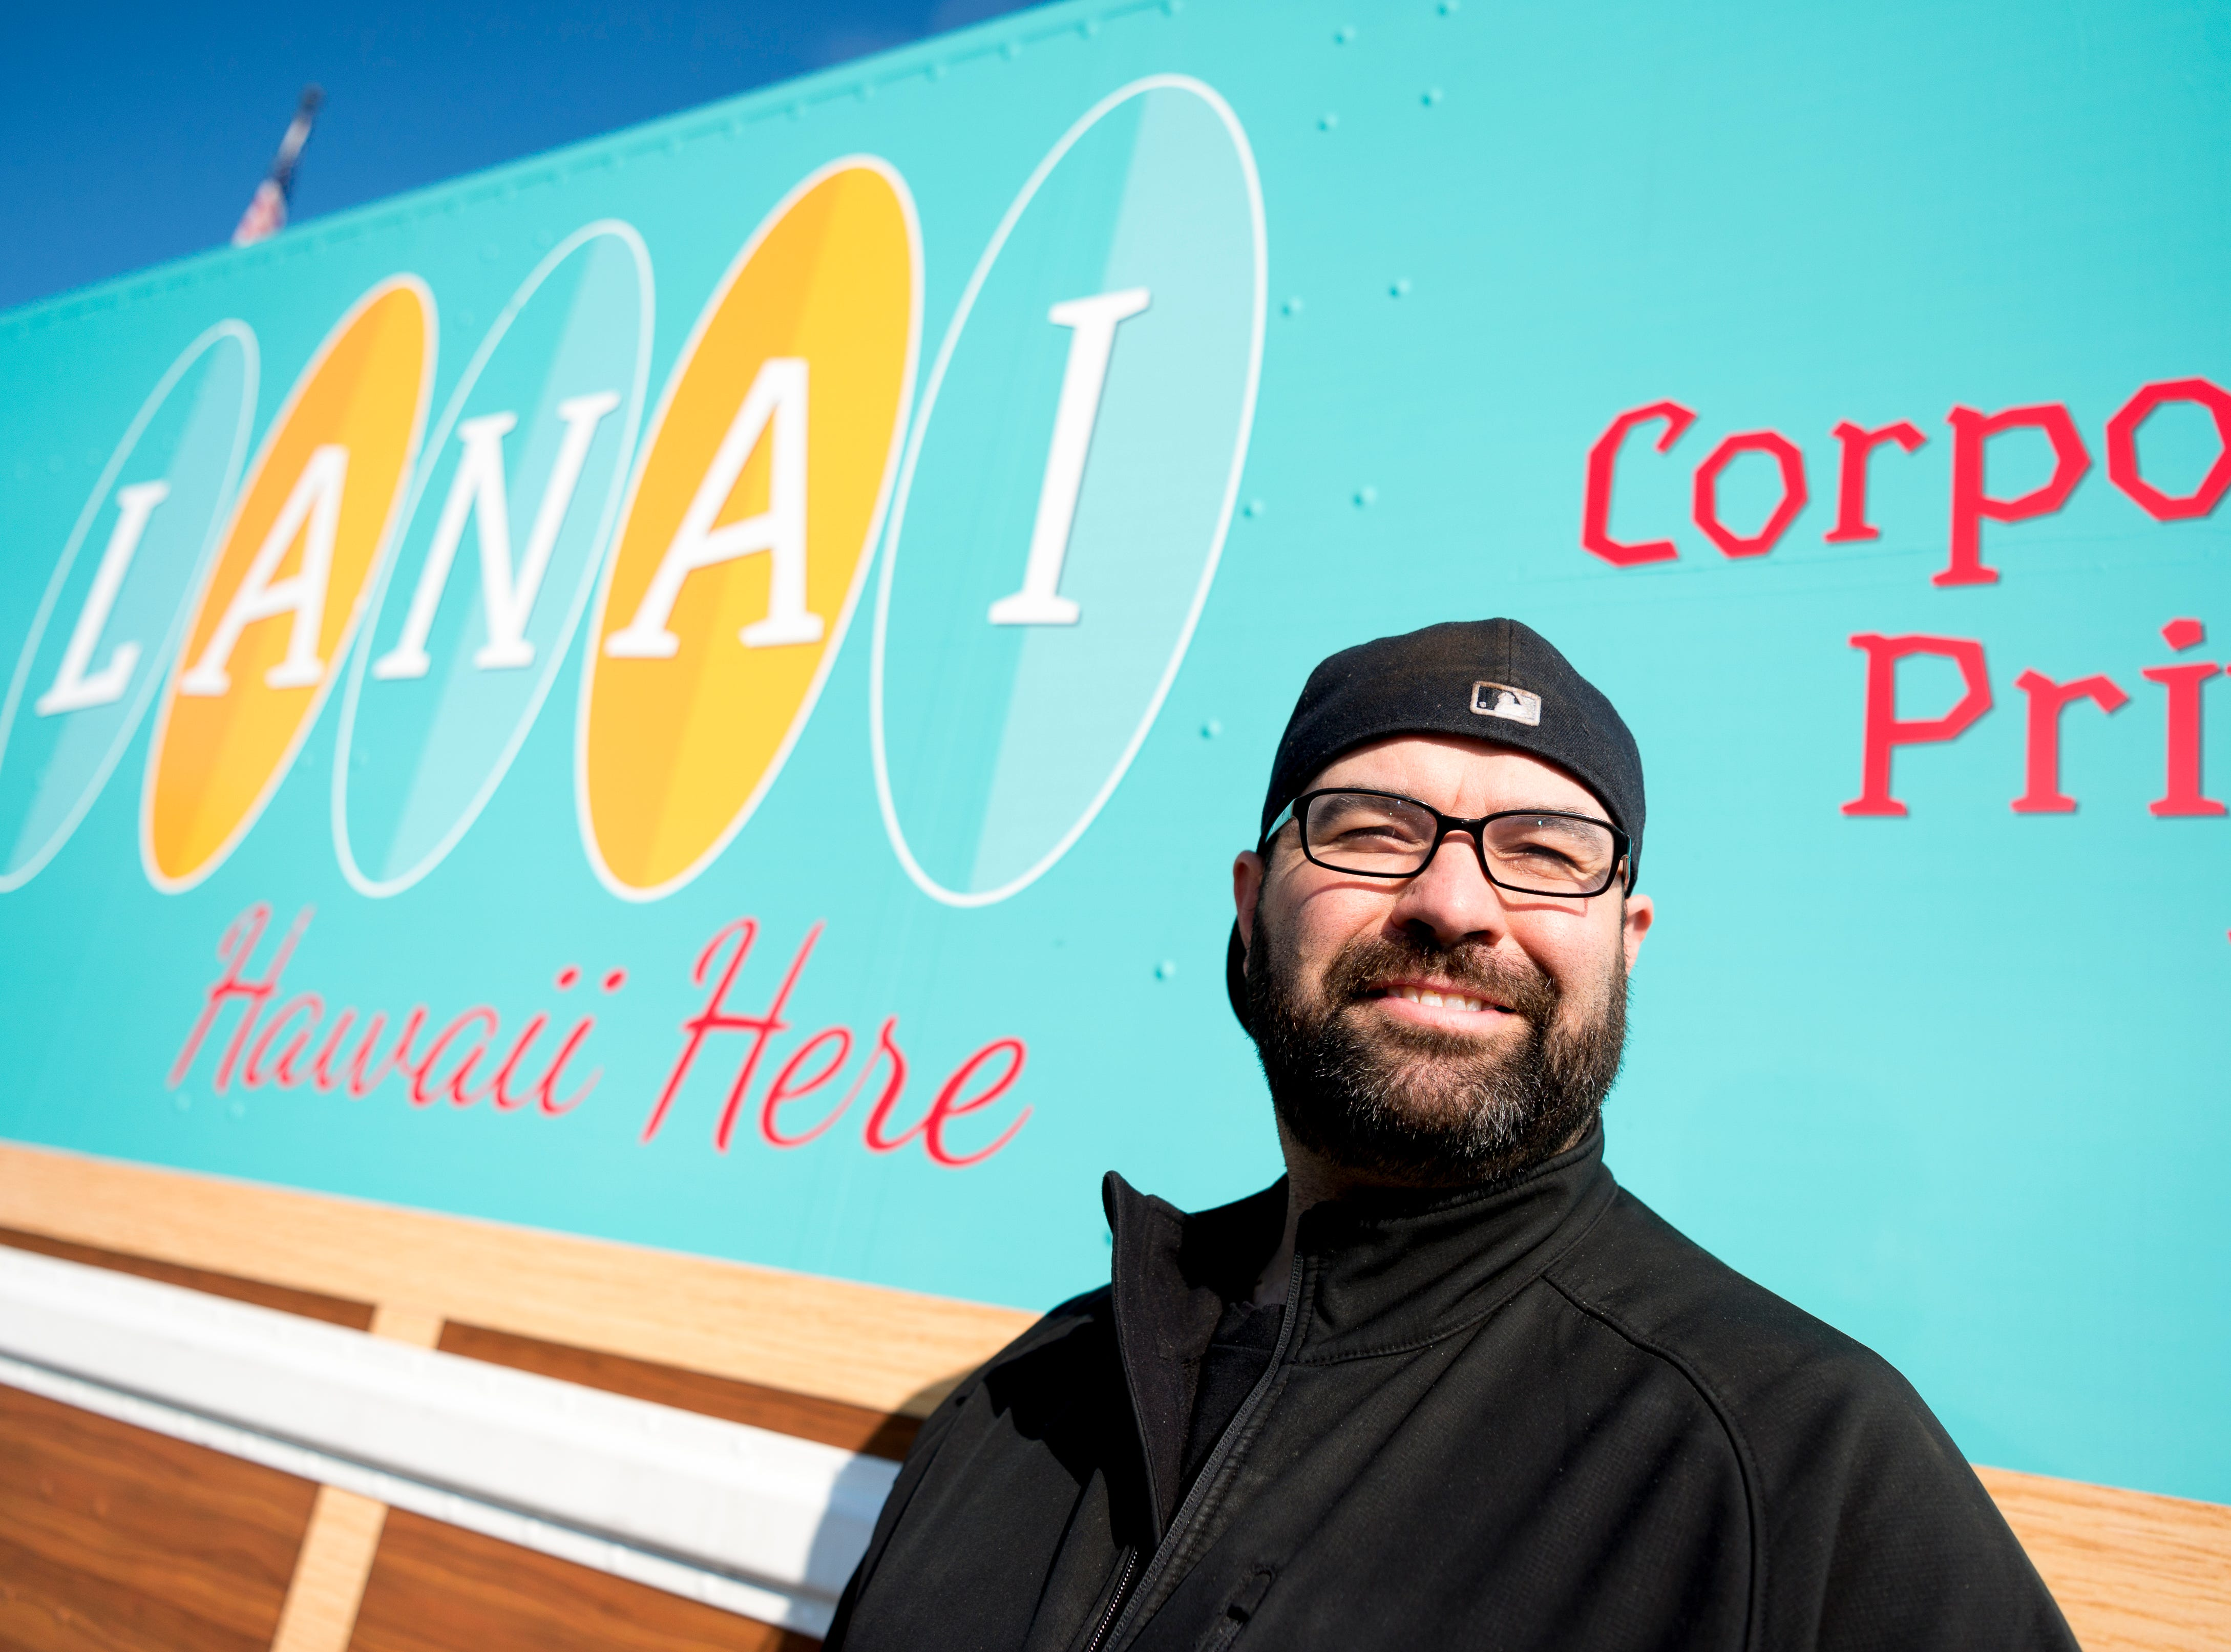 Owner Paul Moody outside of his Lanai Food Truck during a stop at Northshore Elementary School in West Knoxville, Tennessee on Wednesday, April 3, 2019. The food truck offers a fusion of both Hawaiian and Southern flavor.